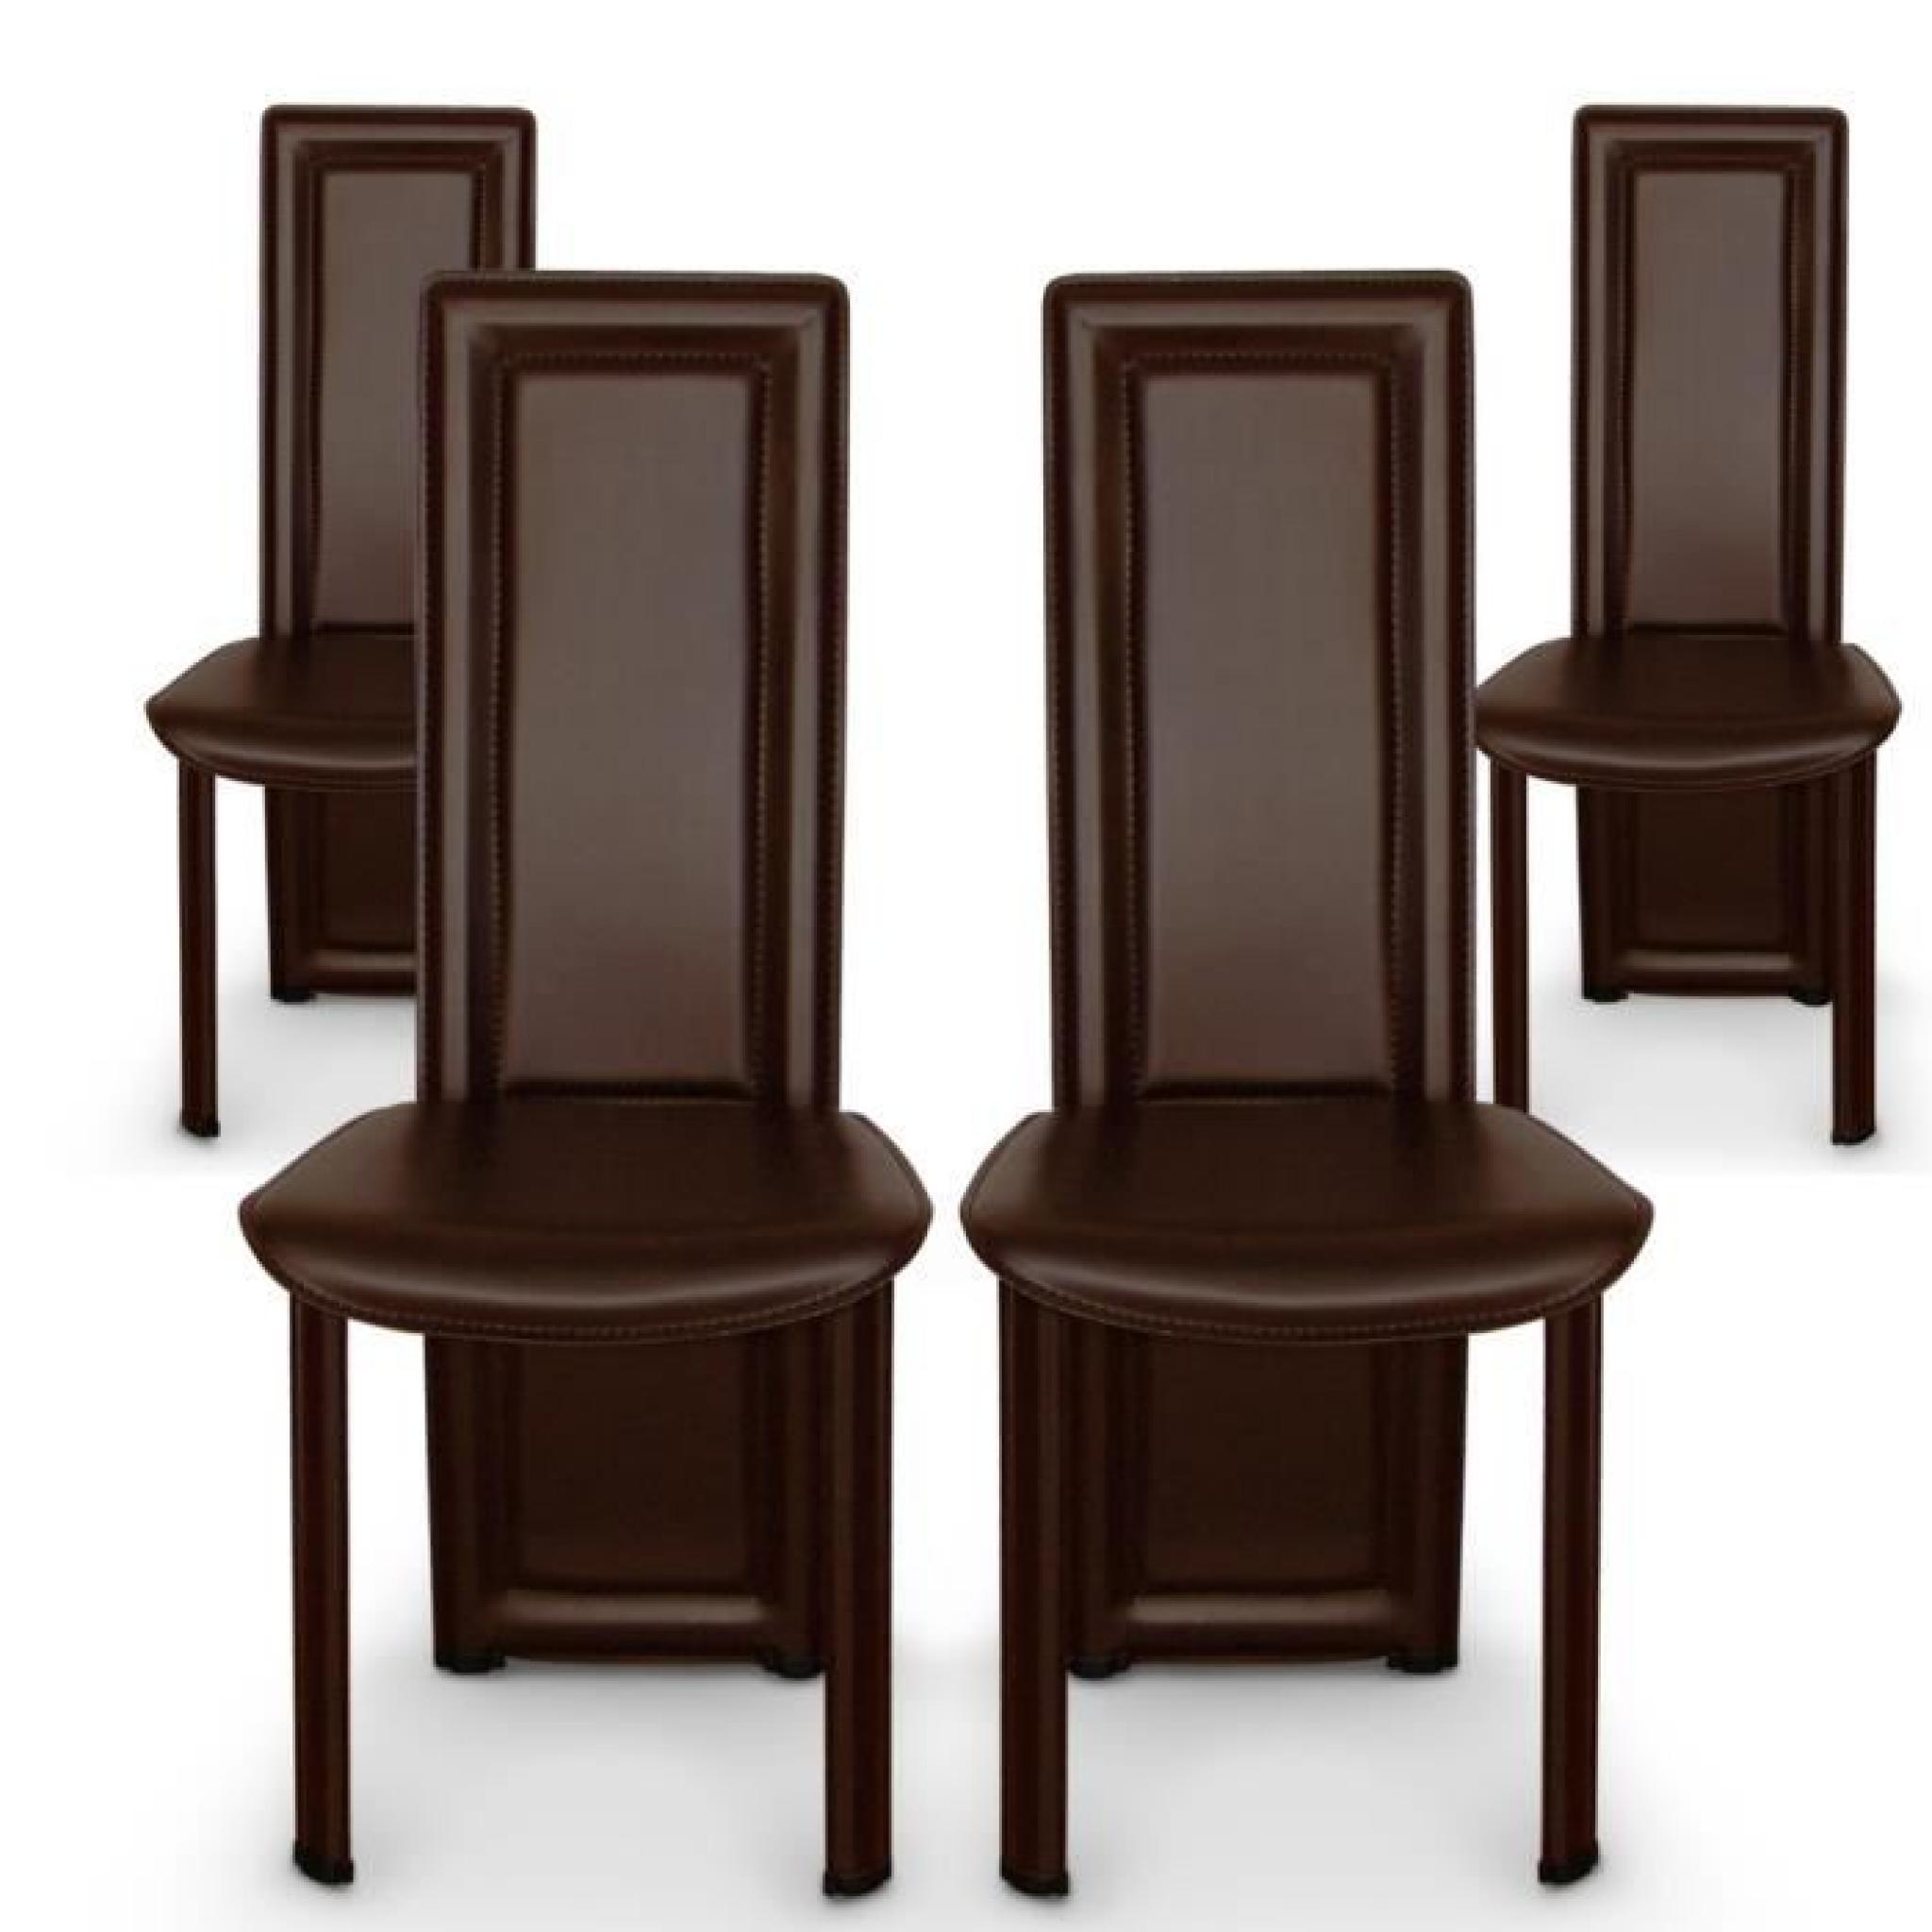 lot de 4 chaises lune marron achat vente chaise salle a manger pas cher couleur et. Black Bedroom Furniture Sets. Home Design Ideas